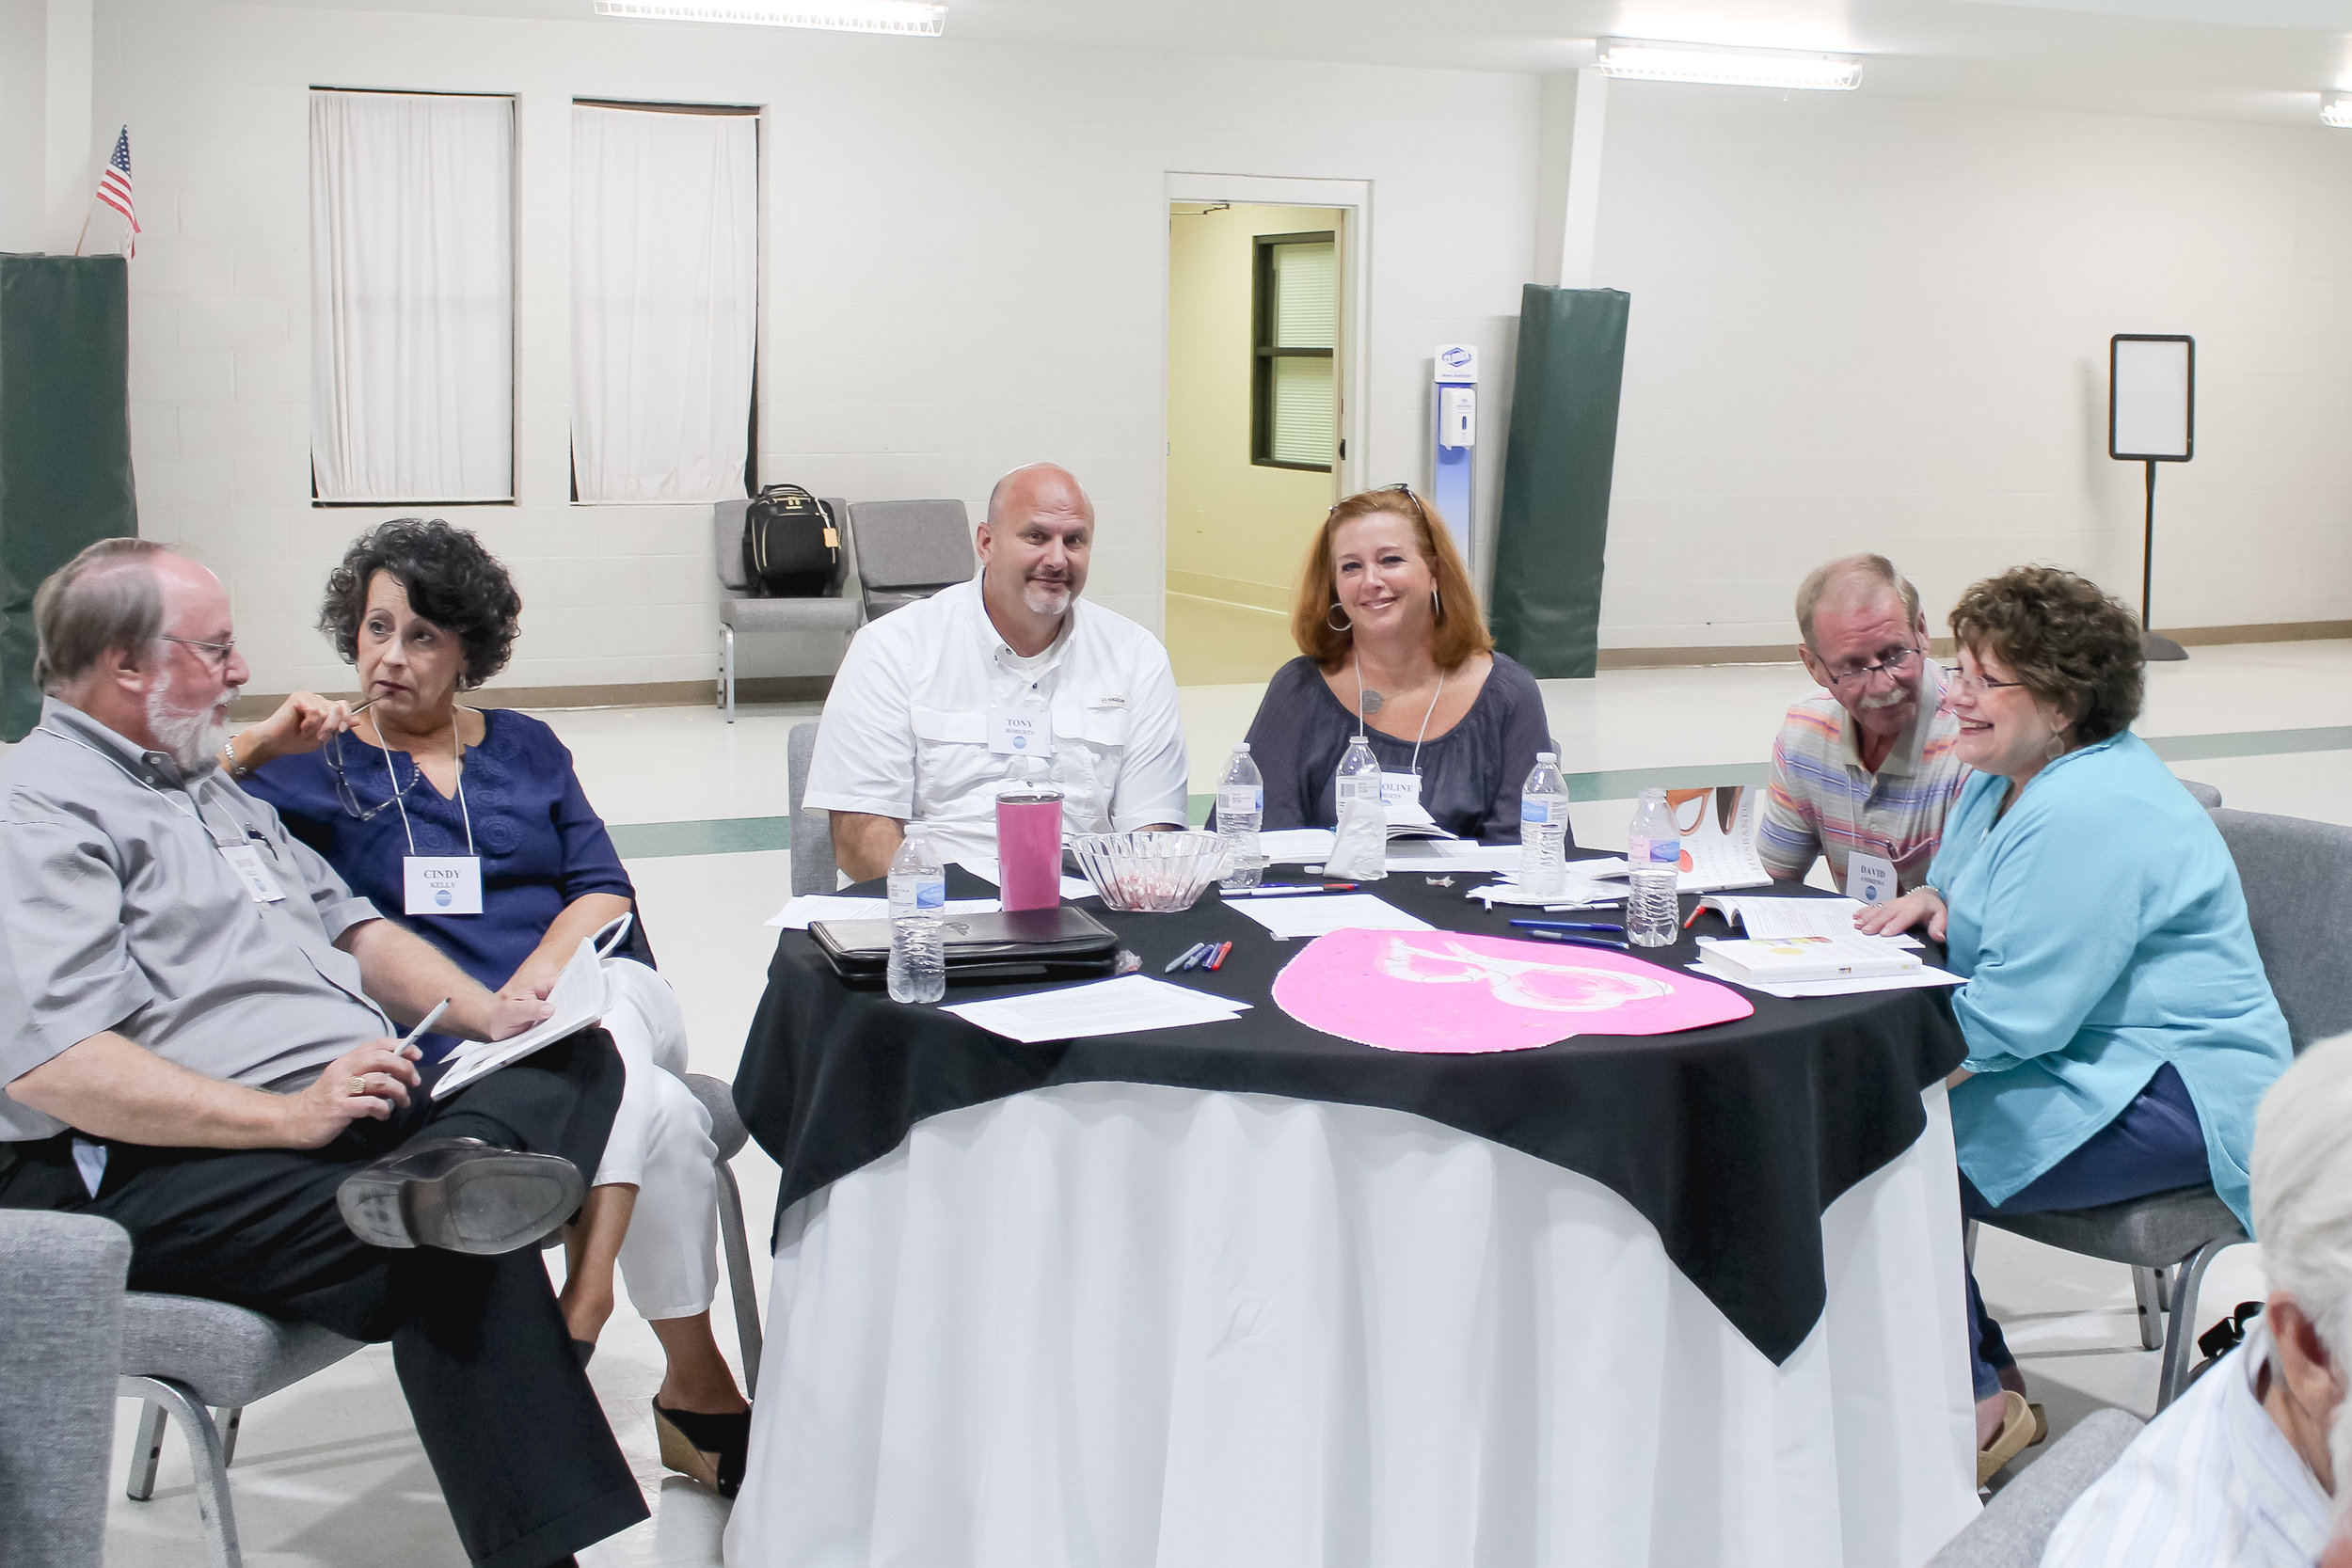 marriage_ministry_training_2018 (4 of 19).jpg